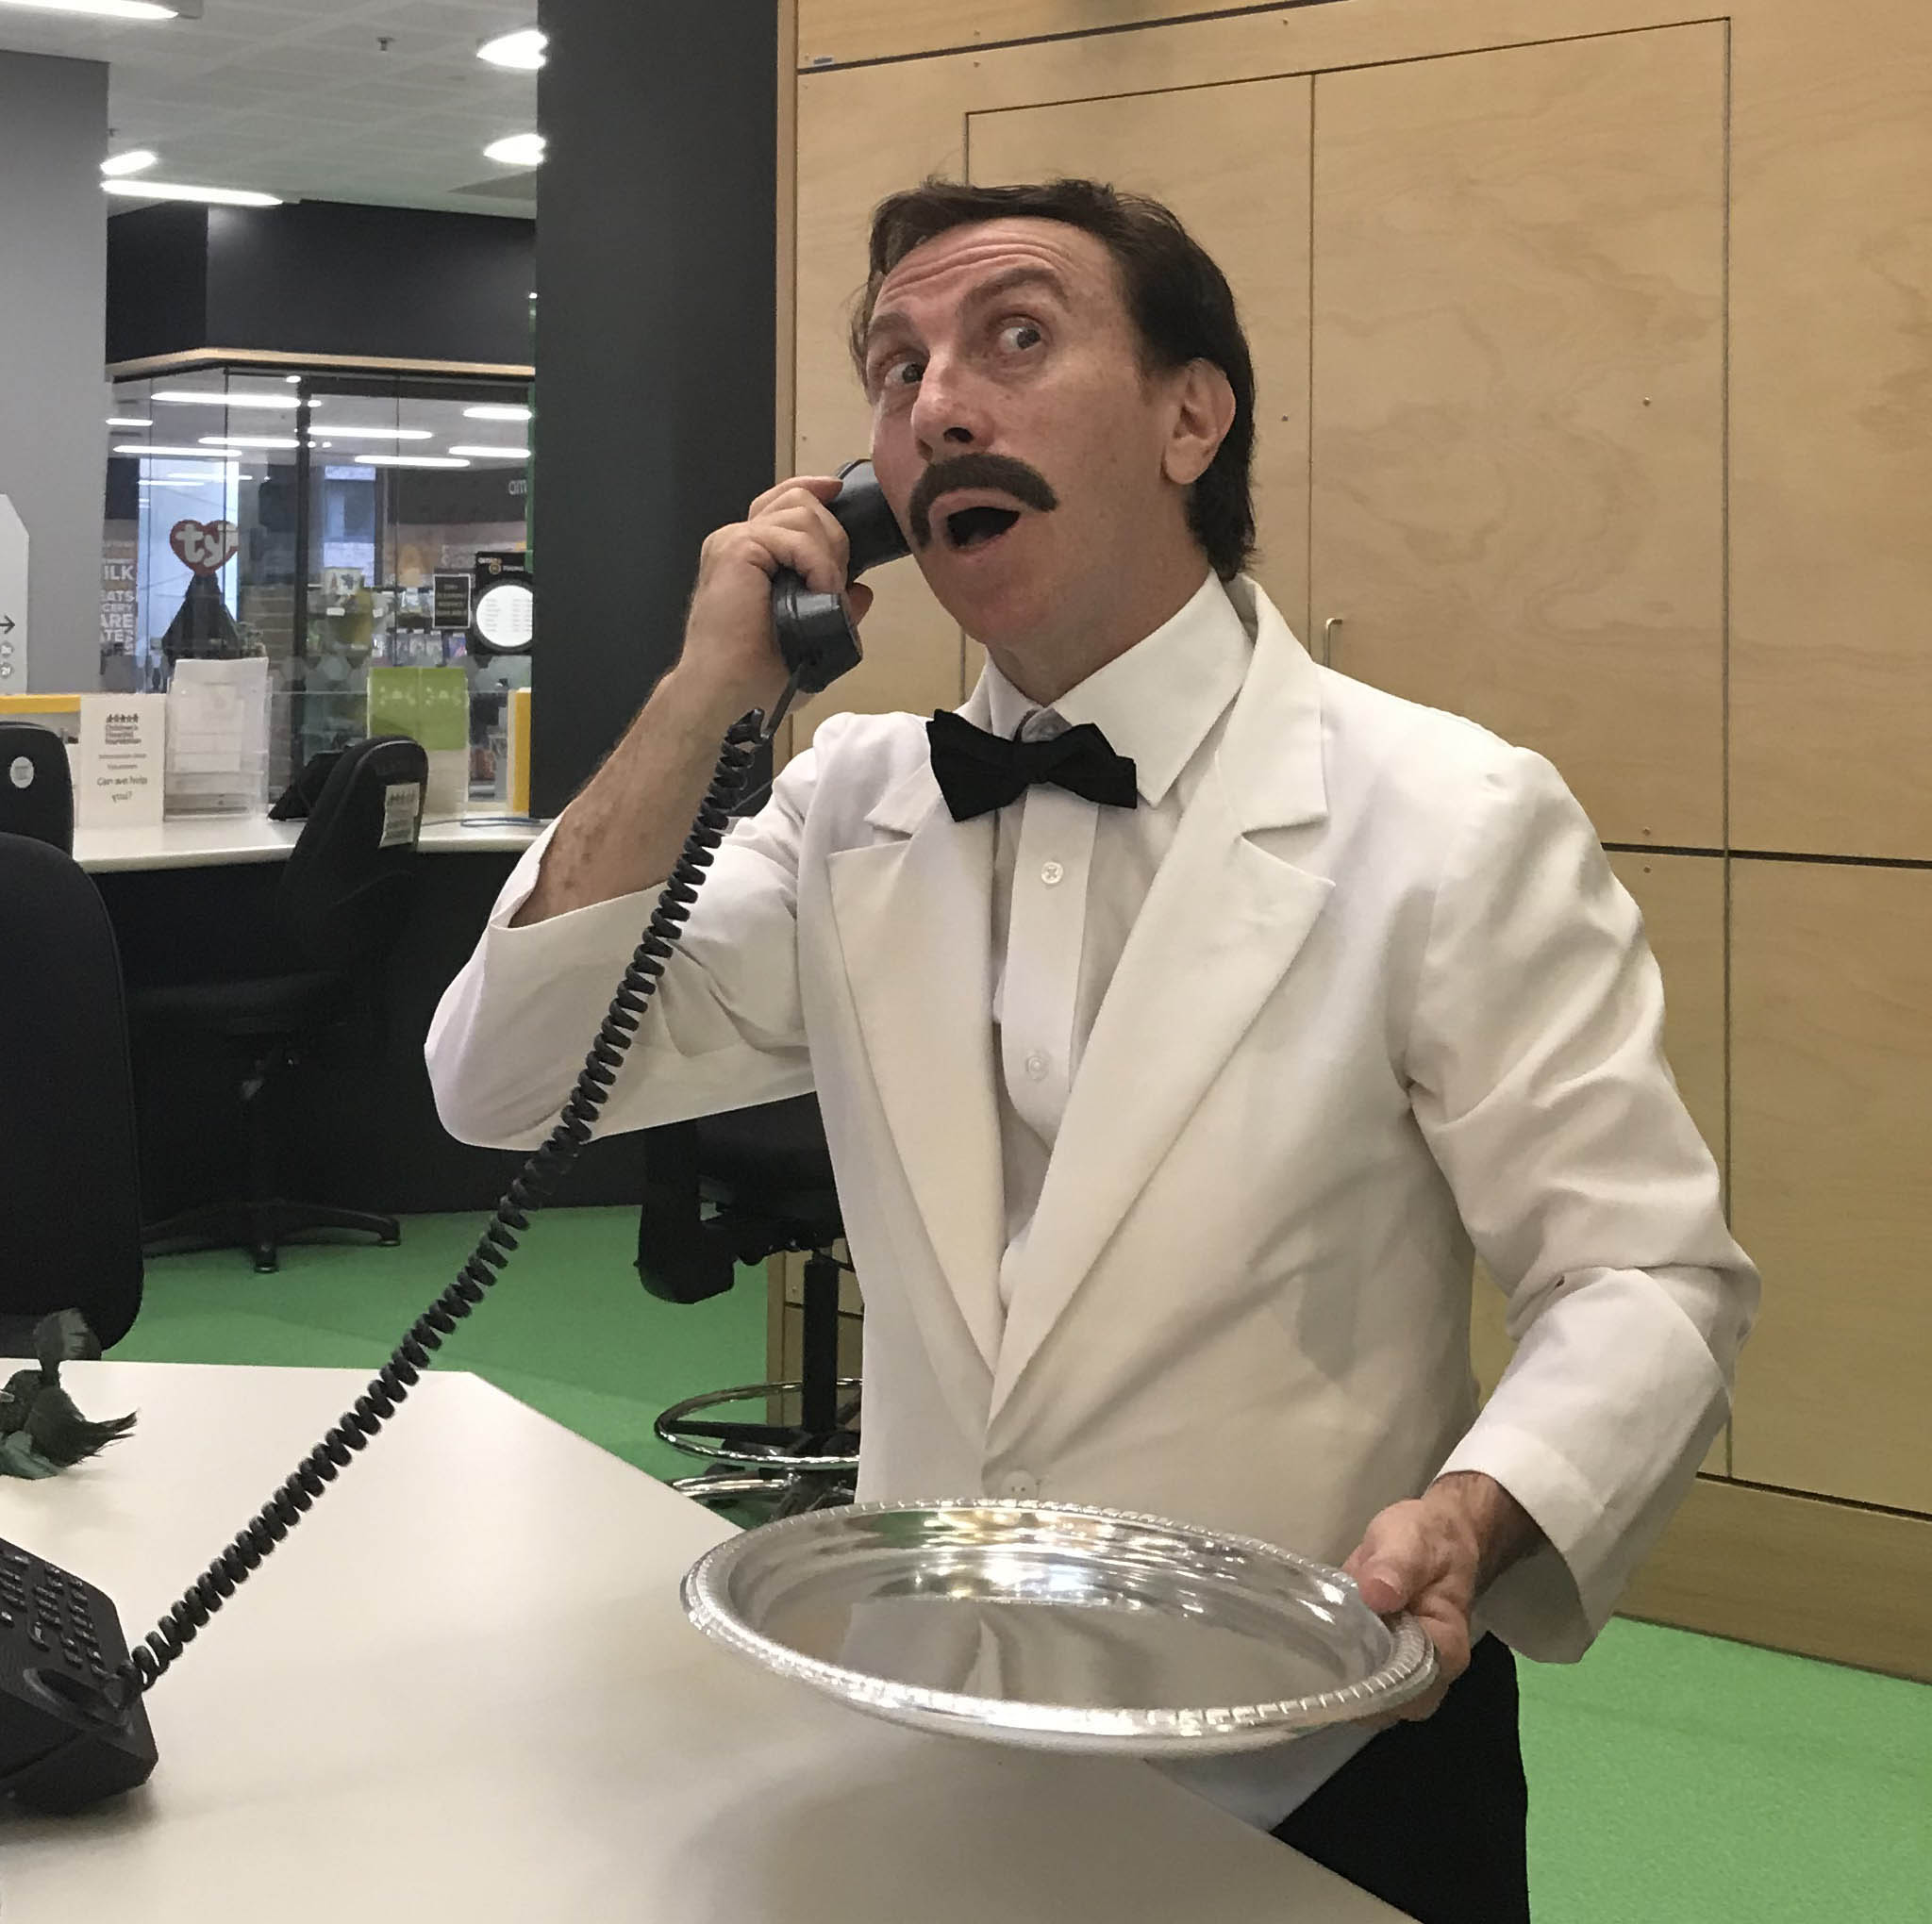 Andy Foreman dressed as Manuel on phone